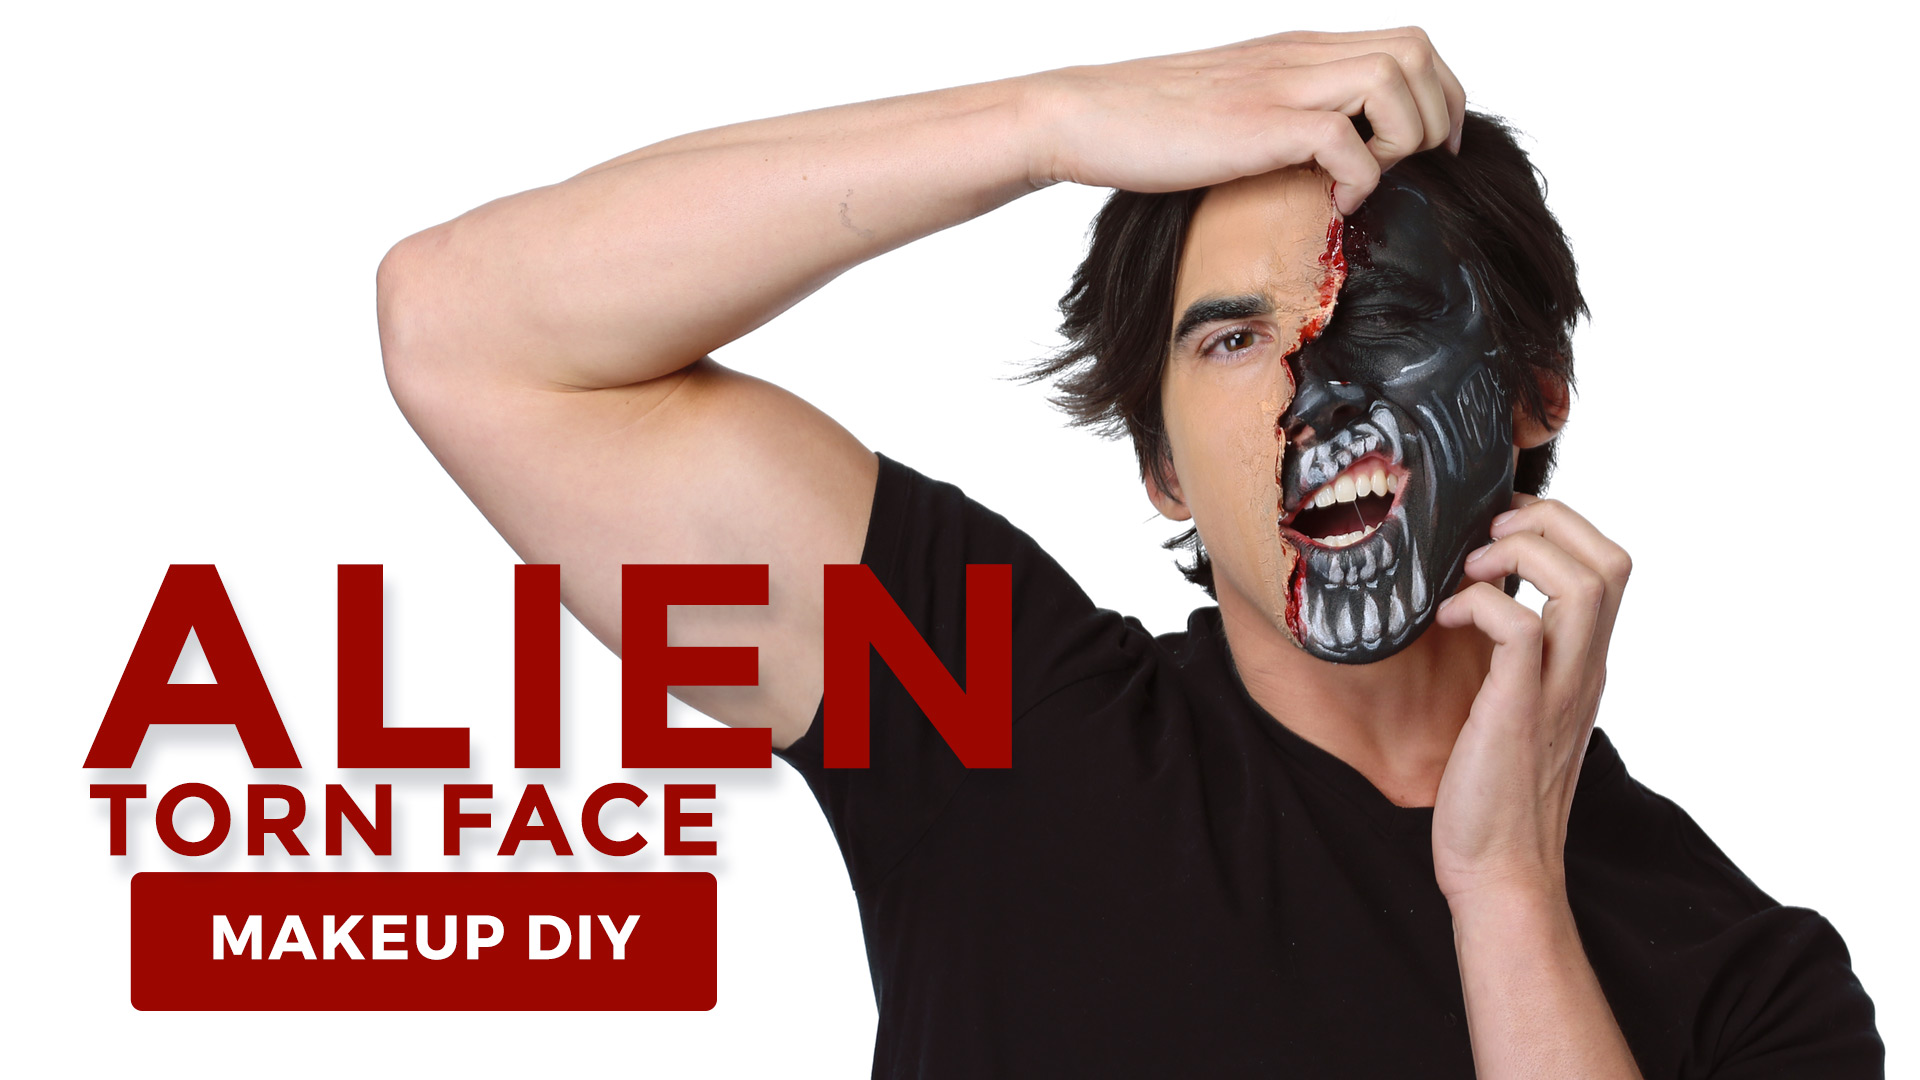 Alien-Makeup-Tutorial-with-Torn-Face Effects